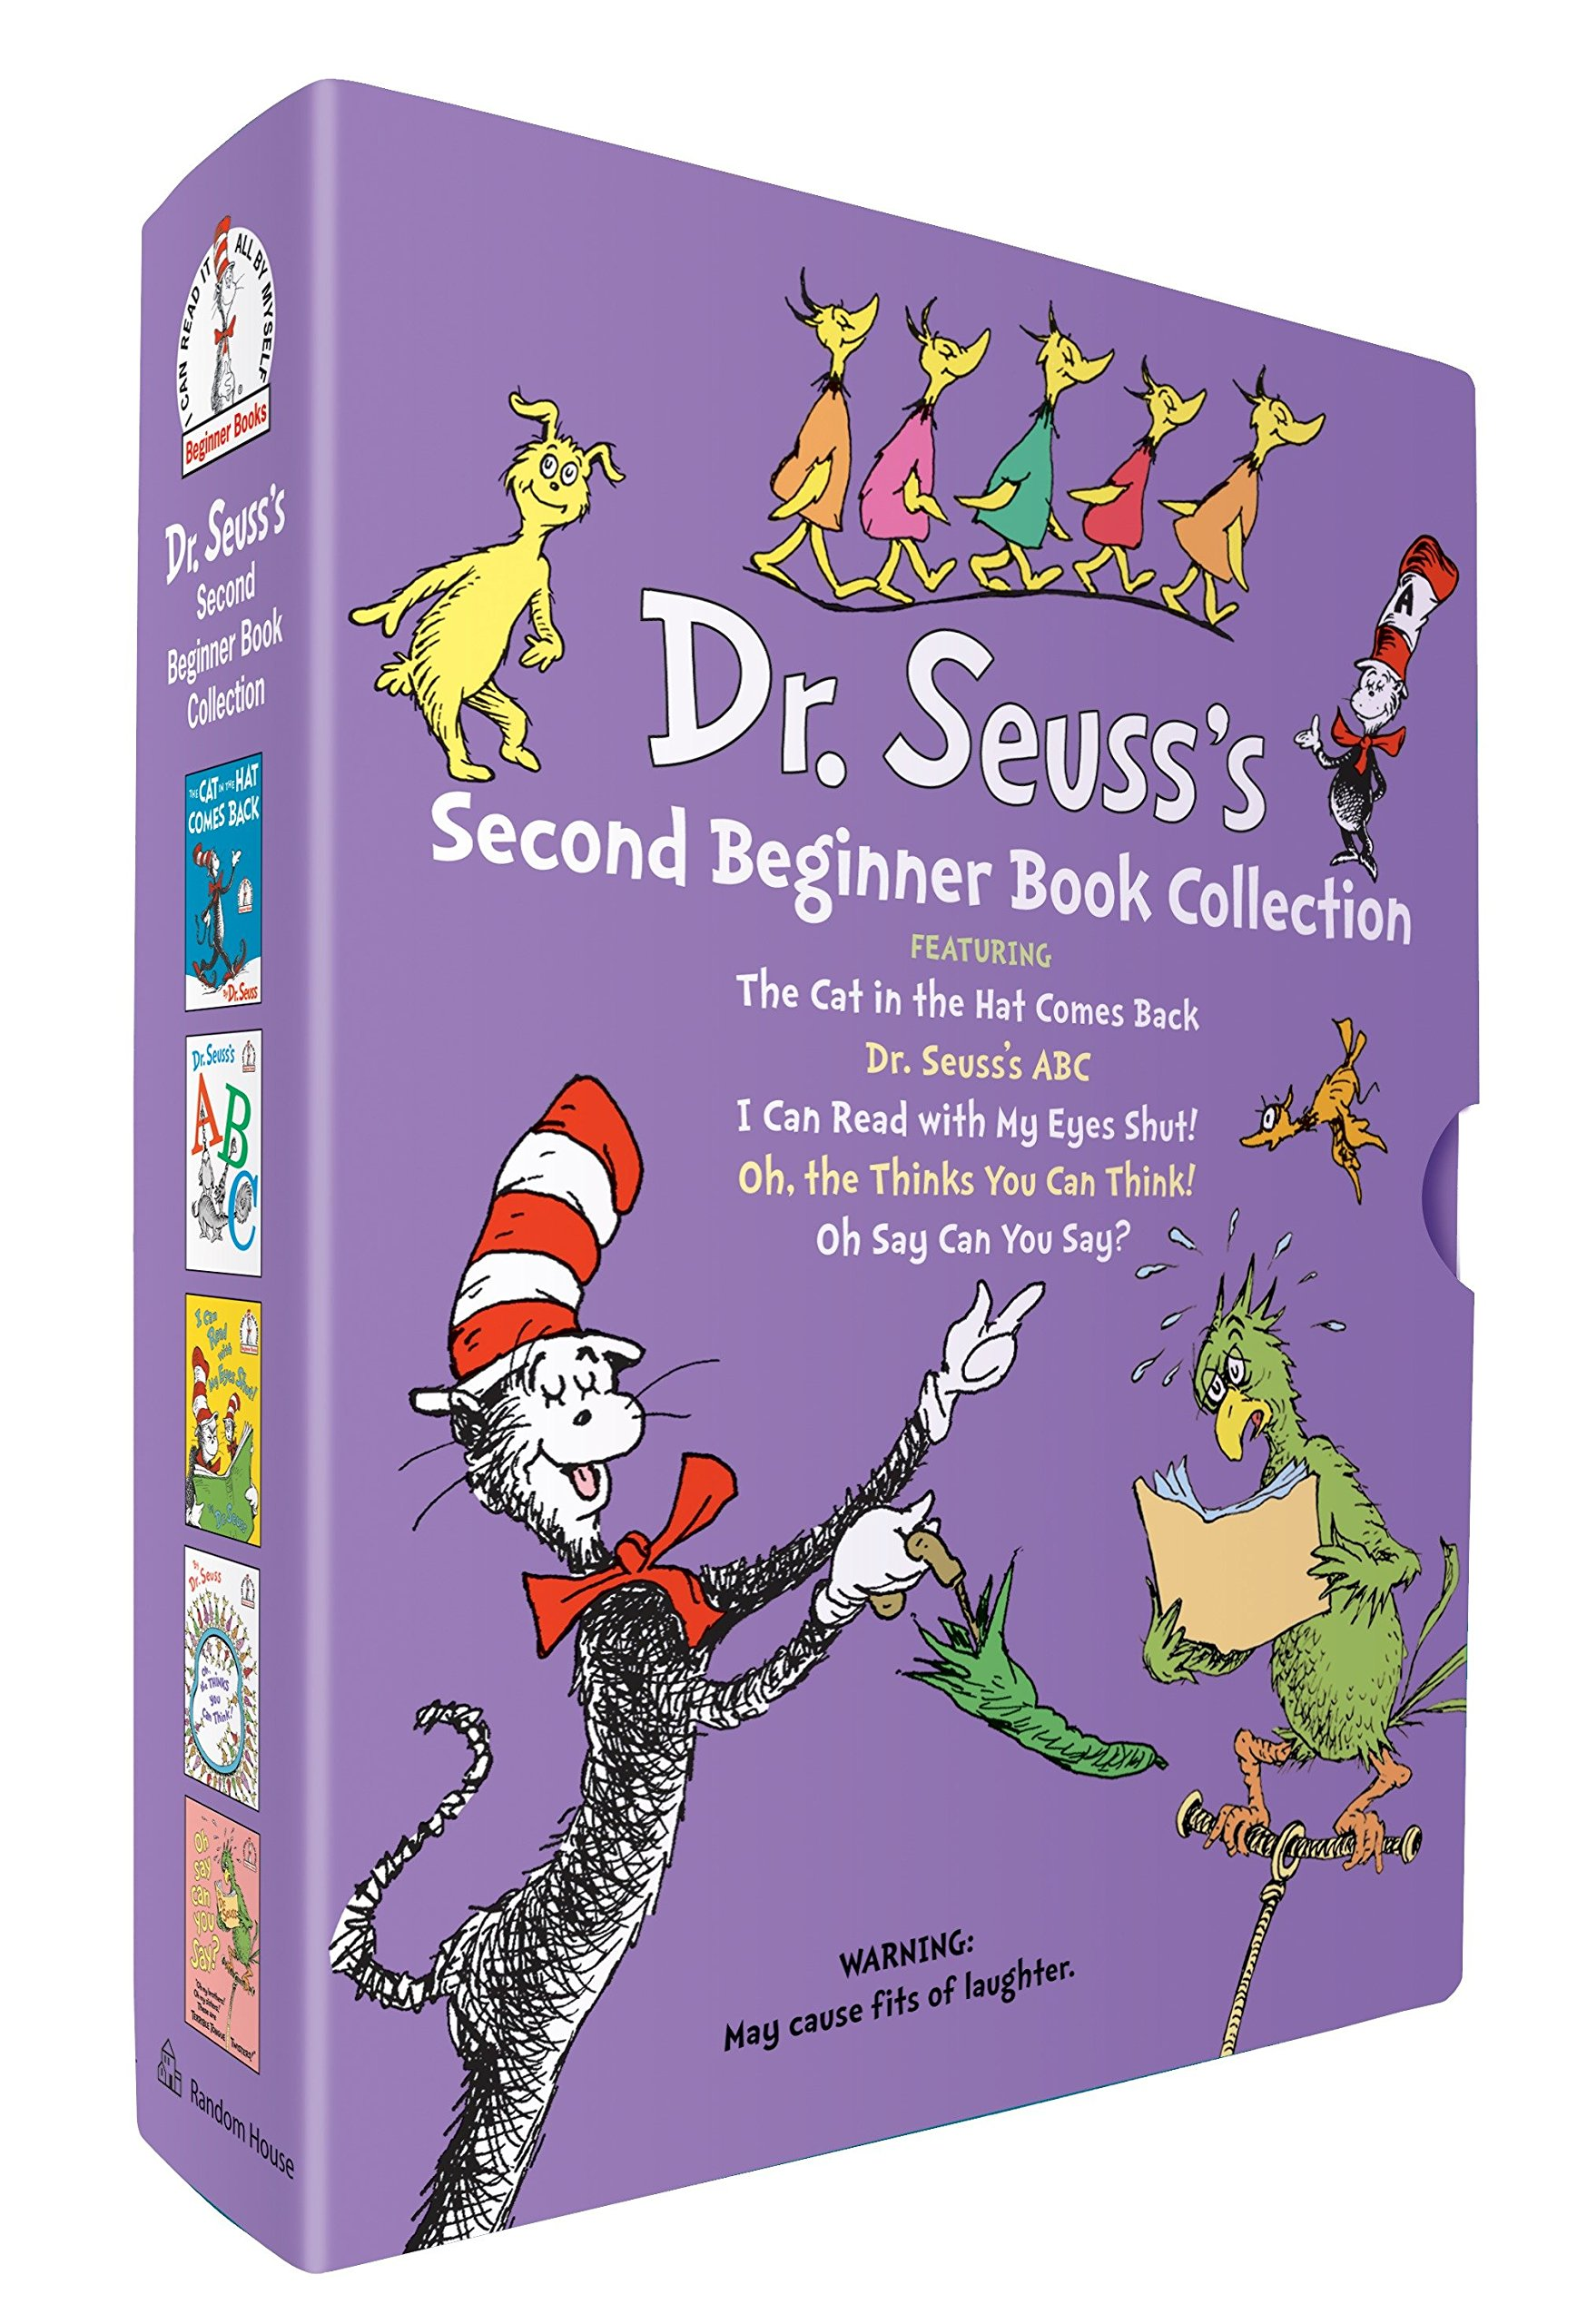 Dr. Seuss's Second Beginner Book Collection (Beginner Books(R)) by Fun To Collect (Image #1)